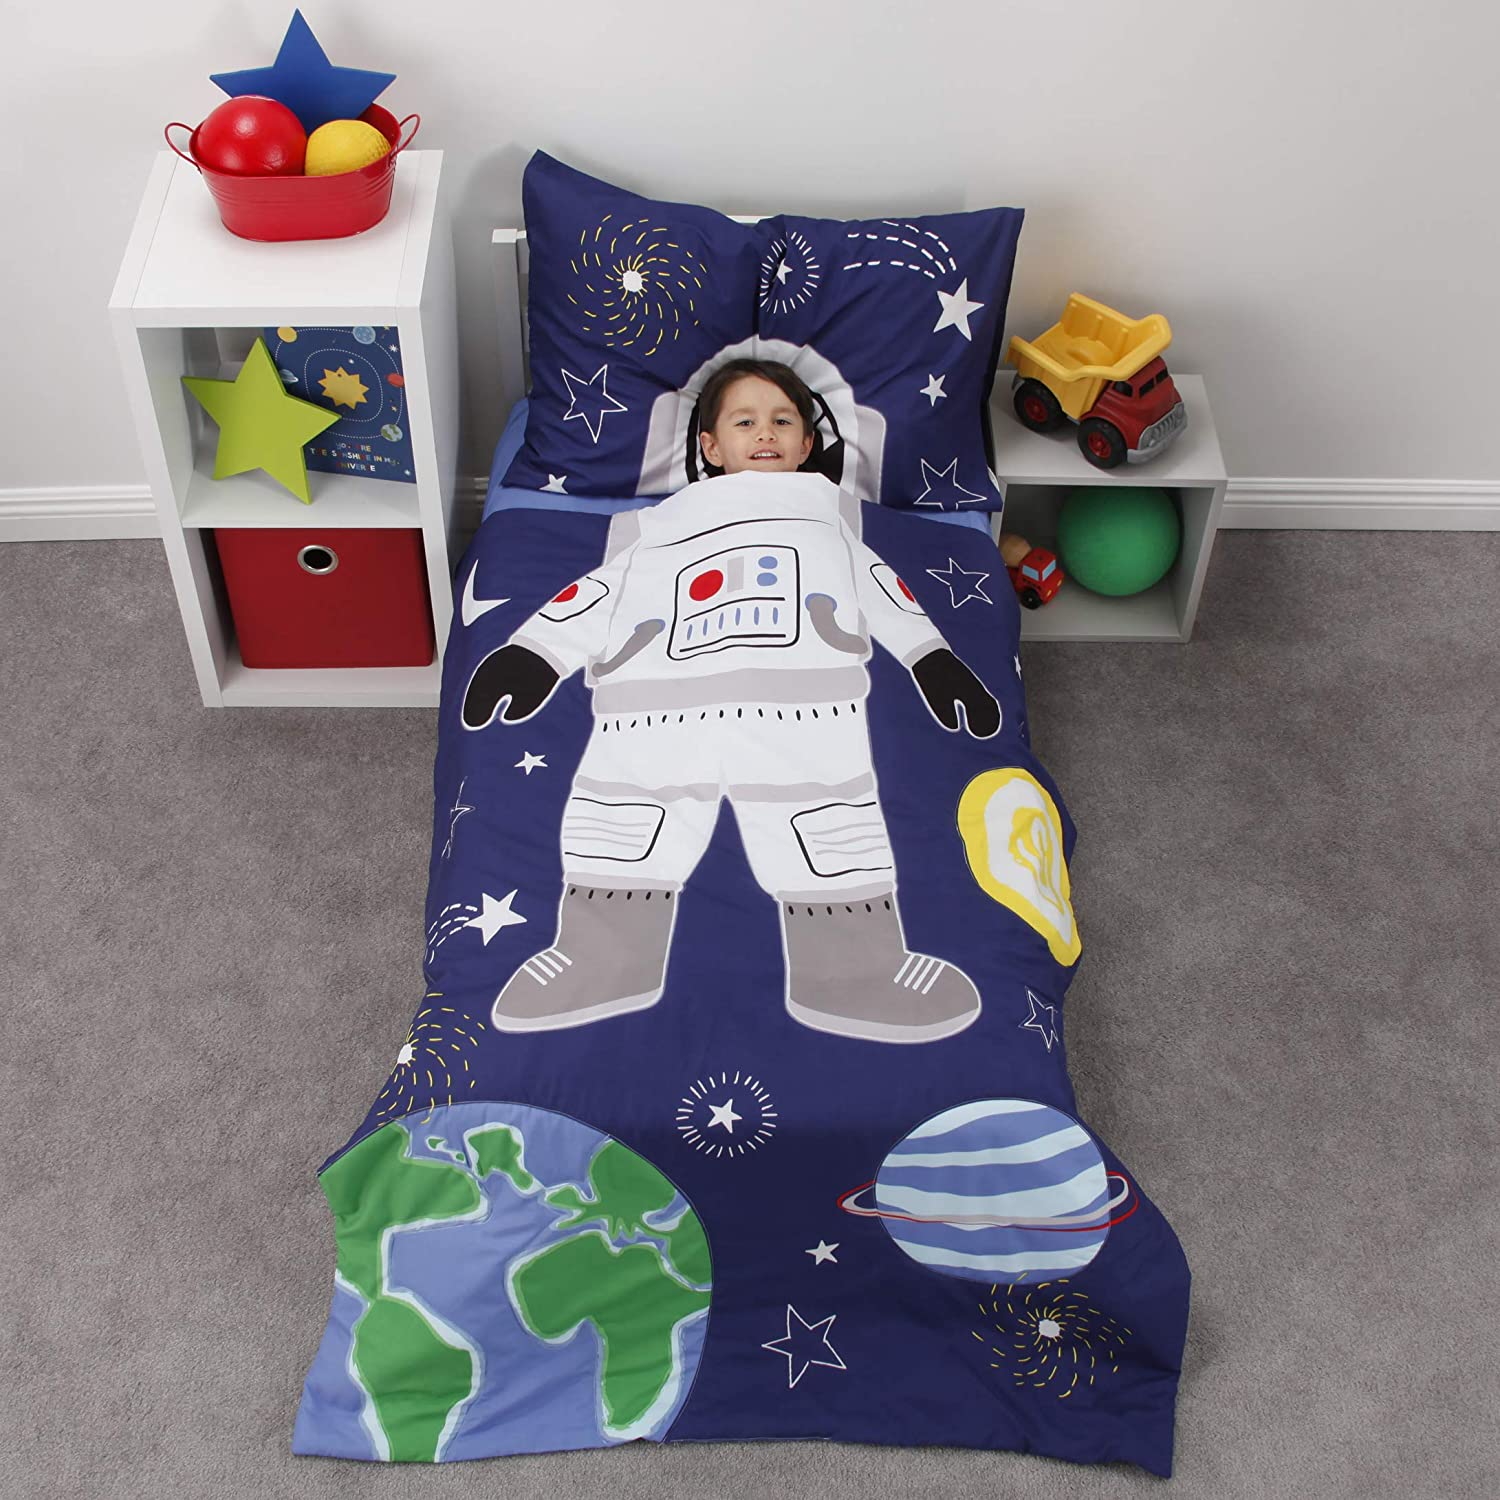 Everything Kids Glow in The Dark 4 Piece Toddler Bed Comforter Set, Space Astronaut, Navy/Green/Yellow/White